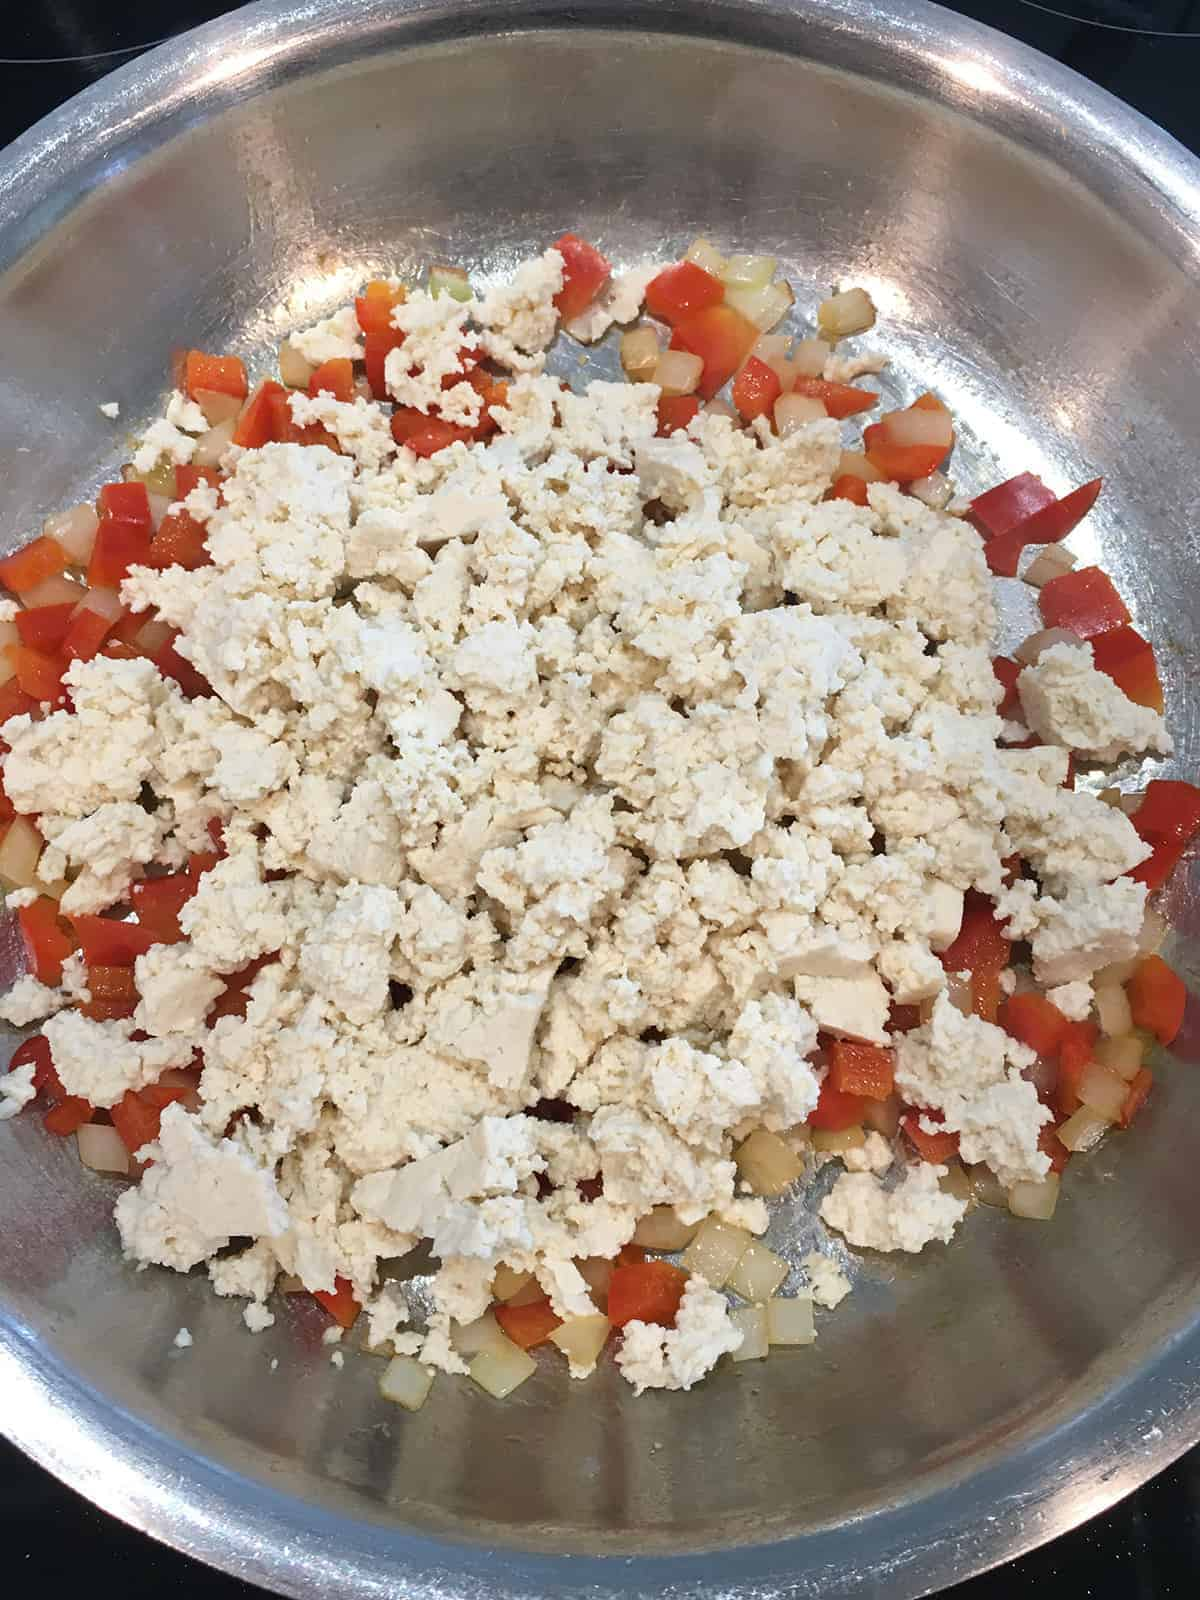 Crumbled tofu on top of cooked onion and red bell pepper in a stainless steel skillet